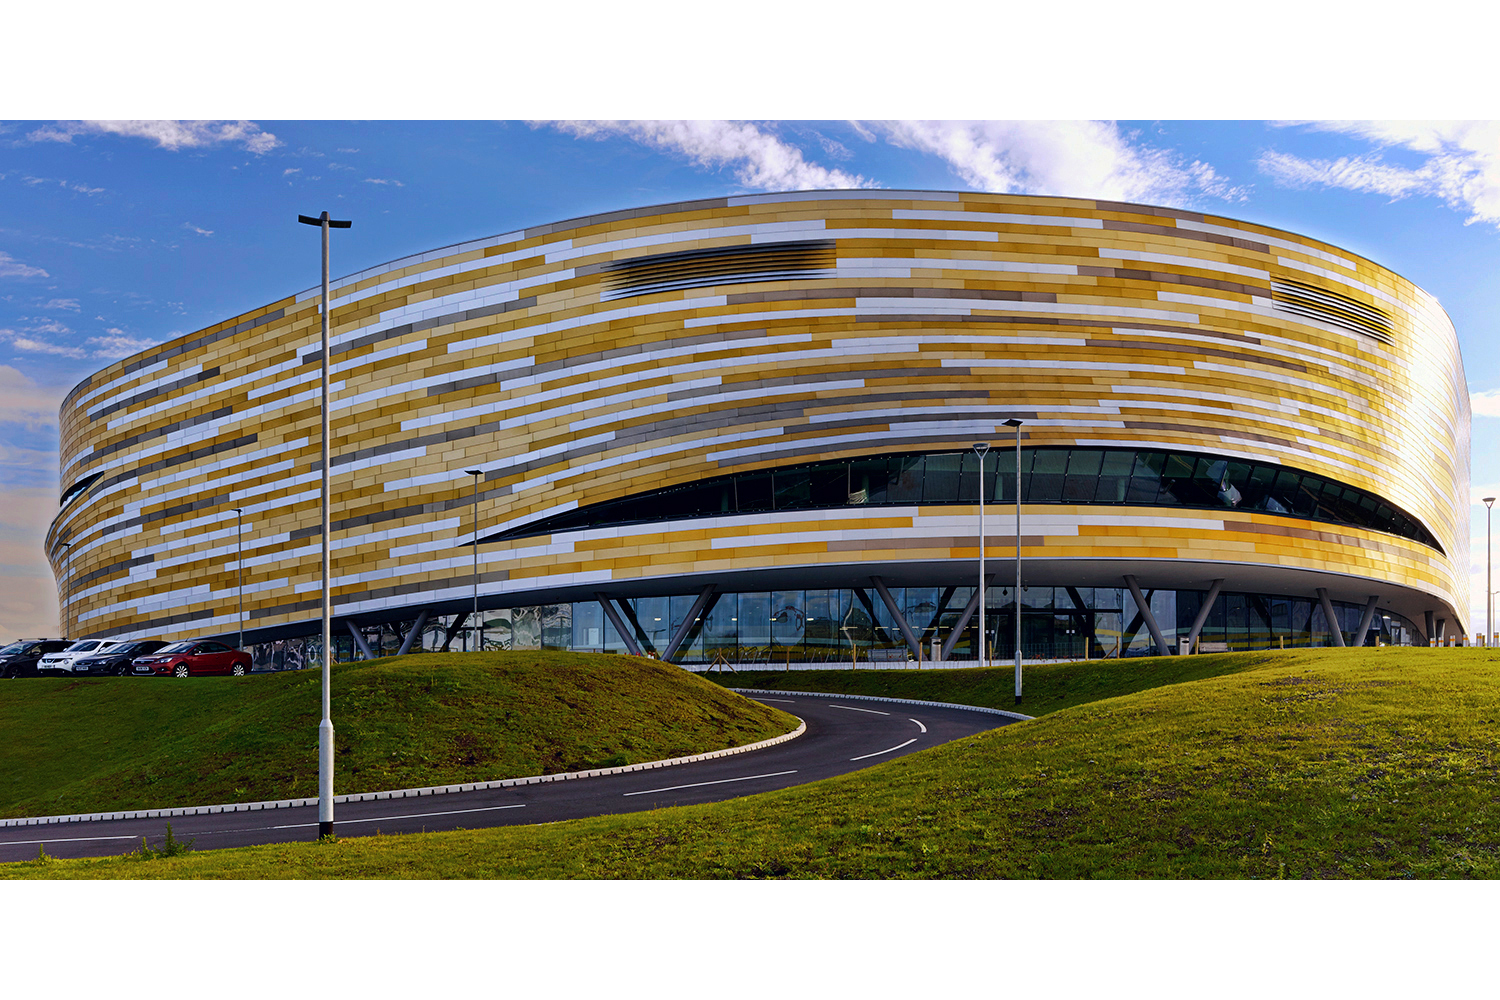 Architectural photography exterior: Derby Arena (Velodrome), Derby, Midlands, UK. Architects: Faulkner browns architects. Image (C) Matthewlingphotography.co.uk